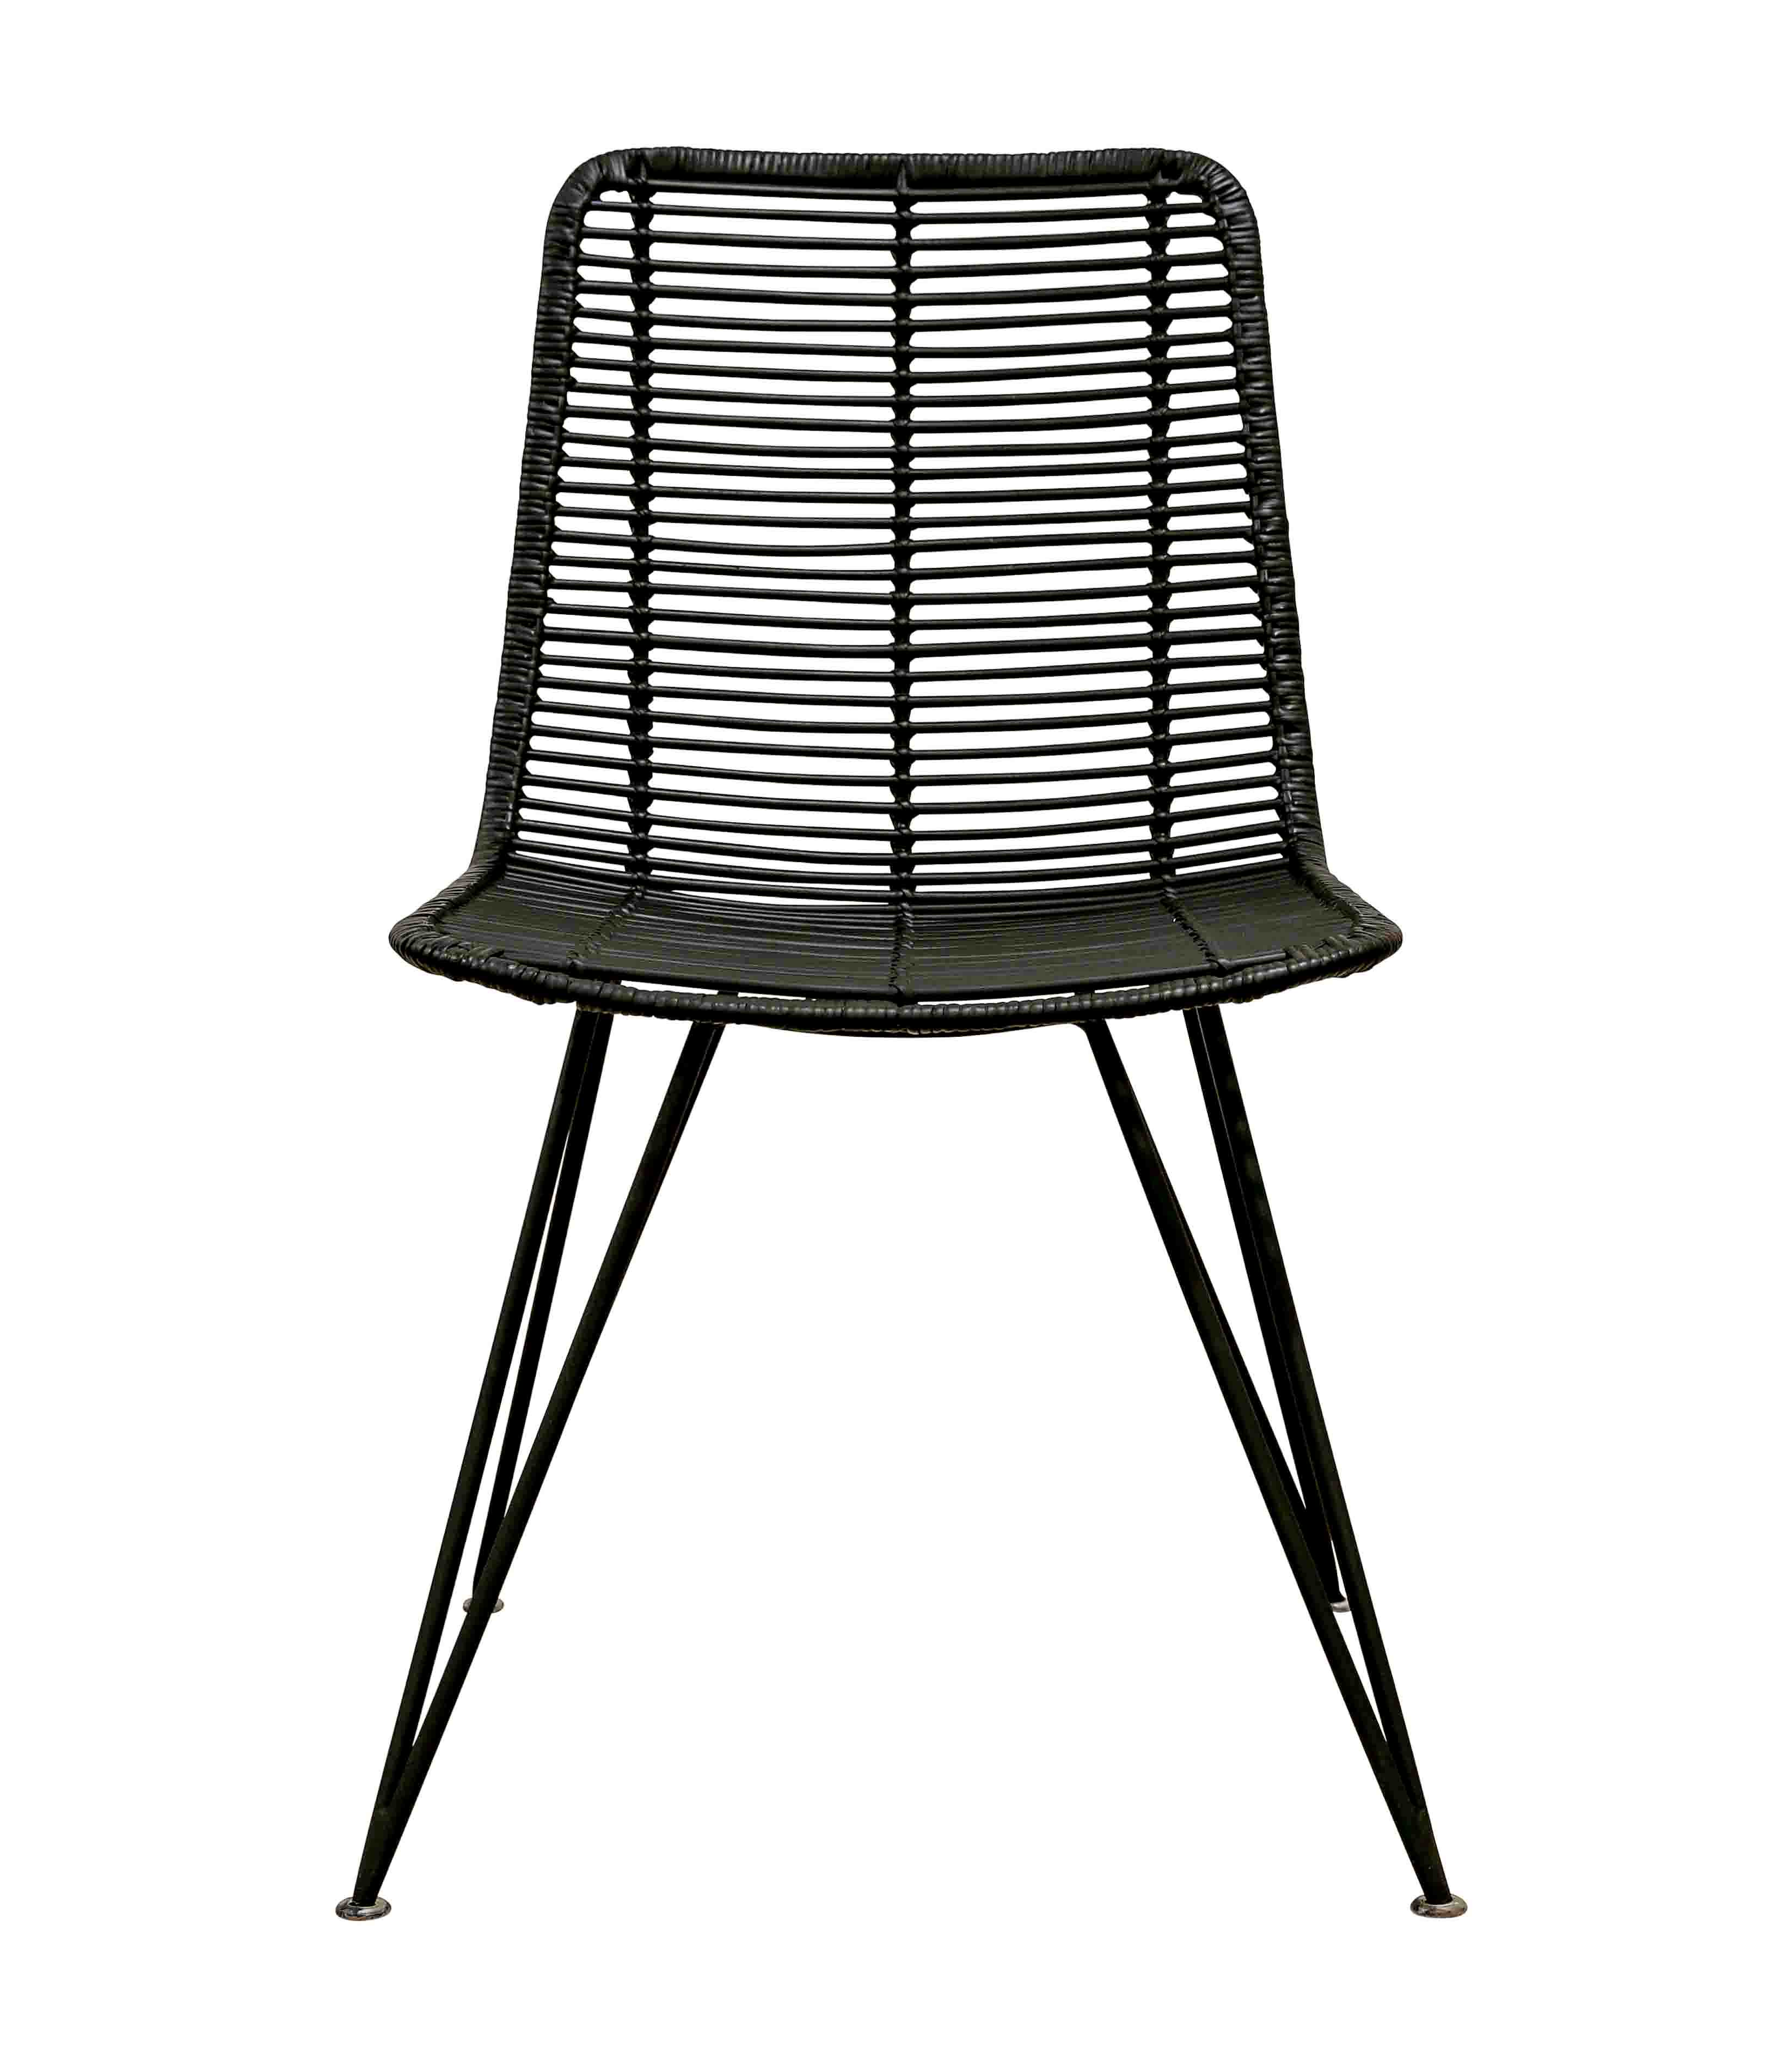 Wicker Dining Chair MICKEY Synthetic Rattan